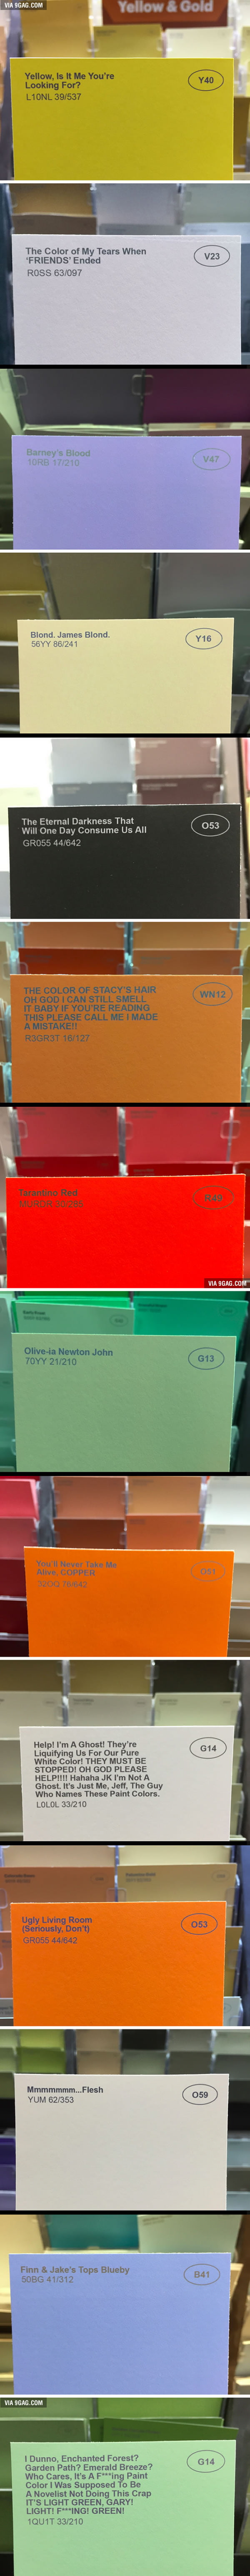 A guy renamed some of the paint colors at the hardware store